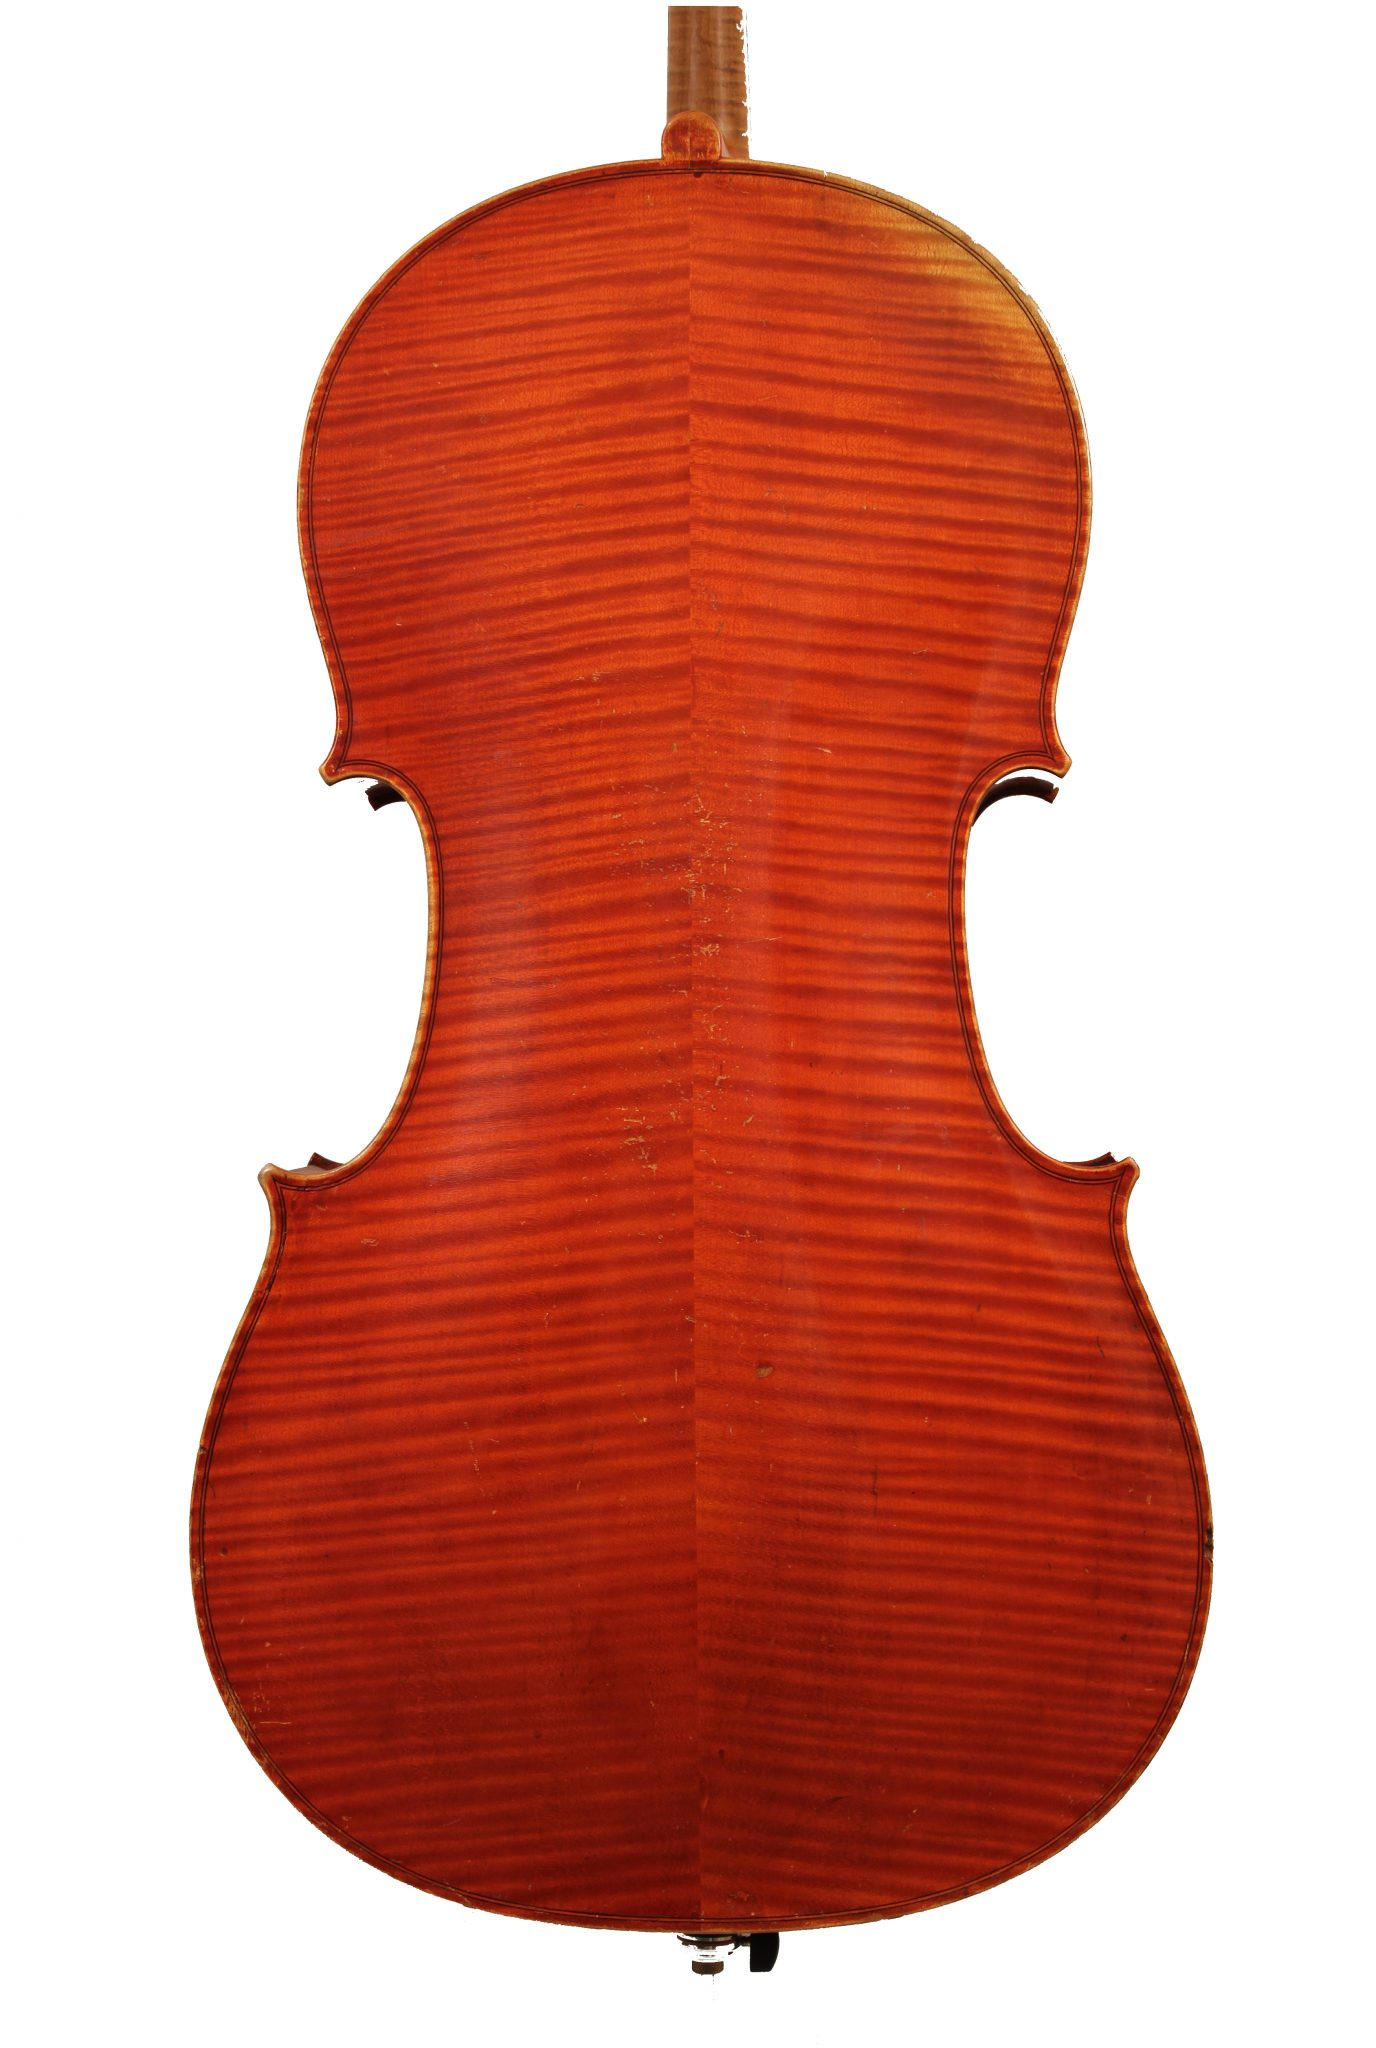 Cello by Paul Francois Blanchard, Lyon 1898 for sale at Bridgewood and Neitzert London